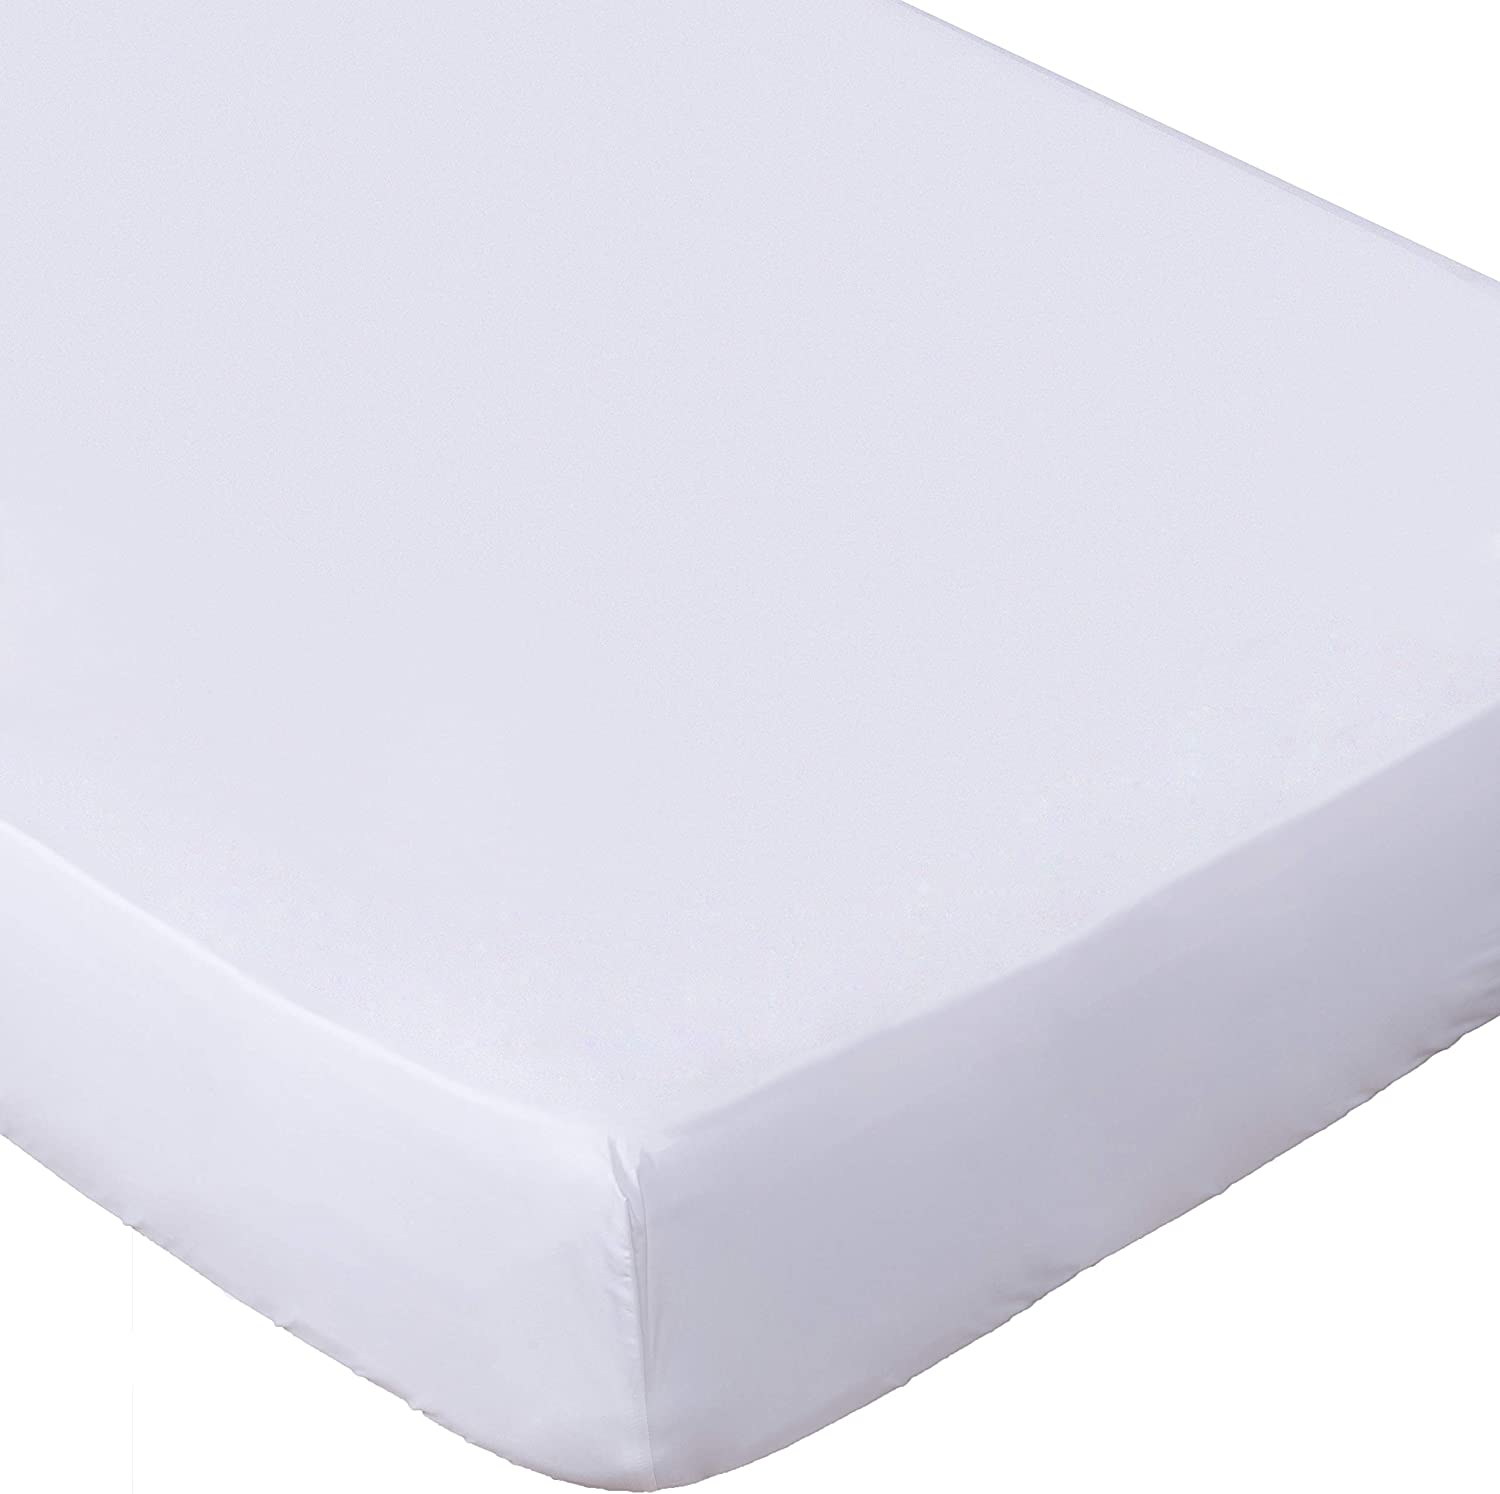 Fitted Sheet for Bed Mattress Microfiber Wrinkle  Fade Stain Resistant Lux Decor